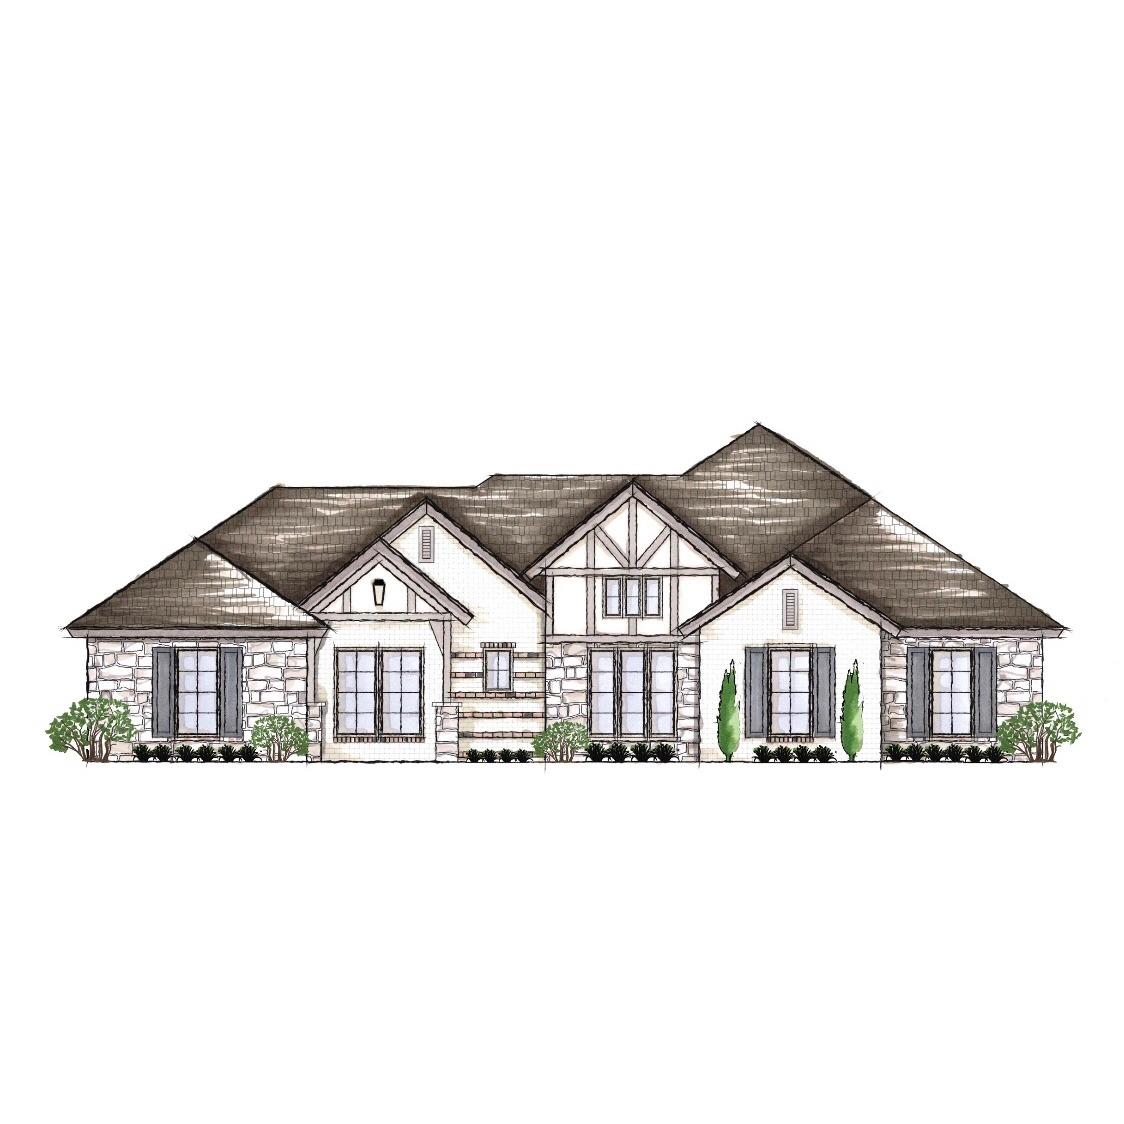 Southern Homes by Dan Wilson is proud to present The Inglewood, a  beautifully crafted new construction home for you and your family. Every home under construction has its own style and design, unique from its neighbor. You will be sure to find custom details and gorgeous finish selections throughout. Hatton Place is located south of 122nd Street and west of Indiana Avenue. It is south of Lubbock-Cooper's Laura Bush Middle School. The newest retail stores, grocery stores and restaurants are conveniently located nearby. Trusted home builder, quality construction and a wonderful new neighborhood...WELCOME HOME!